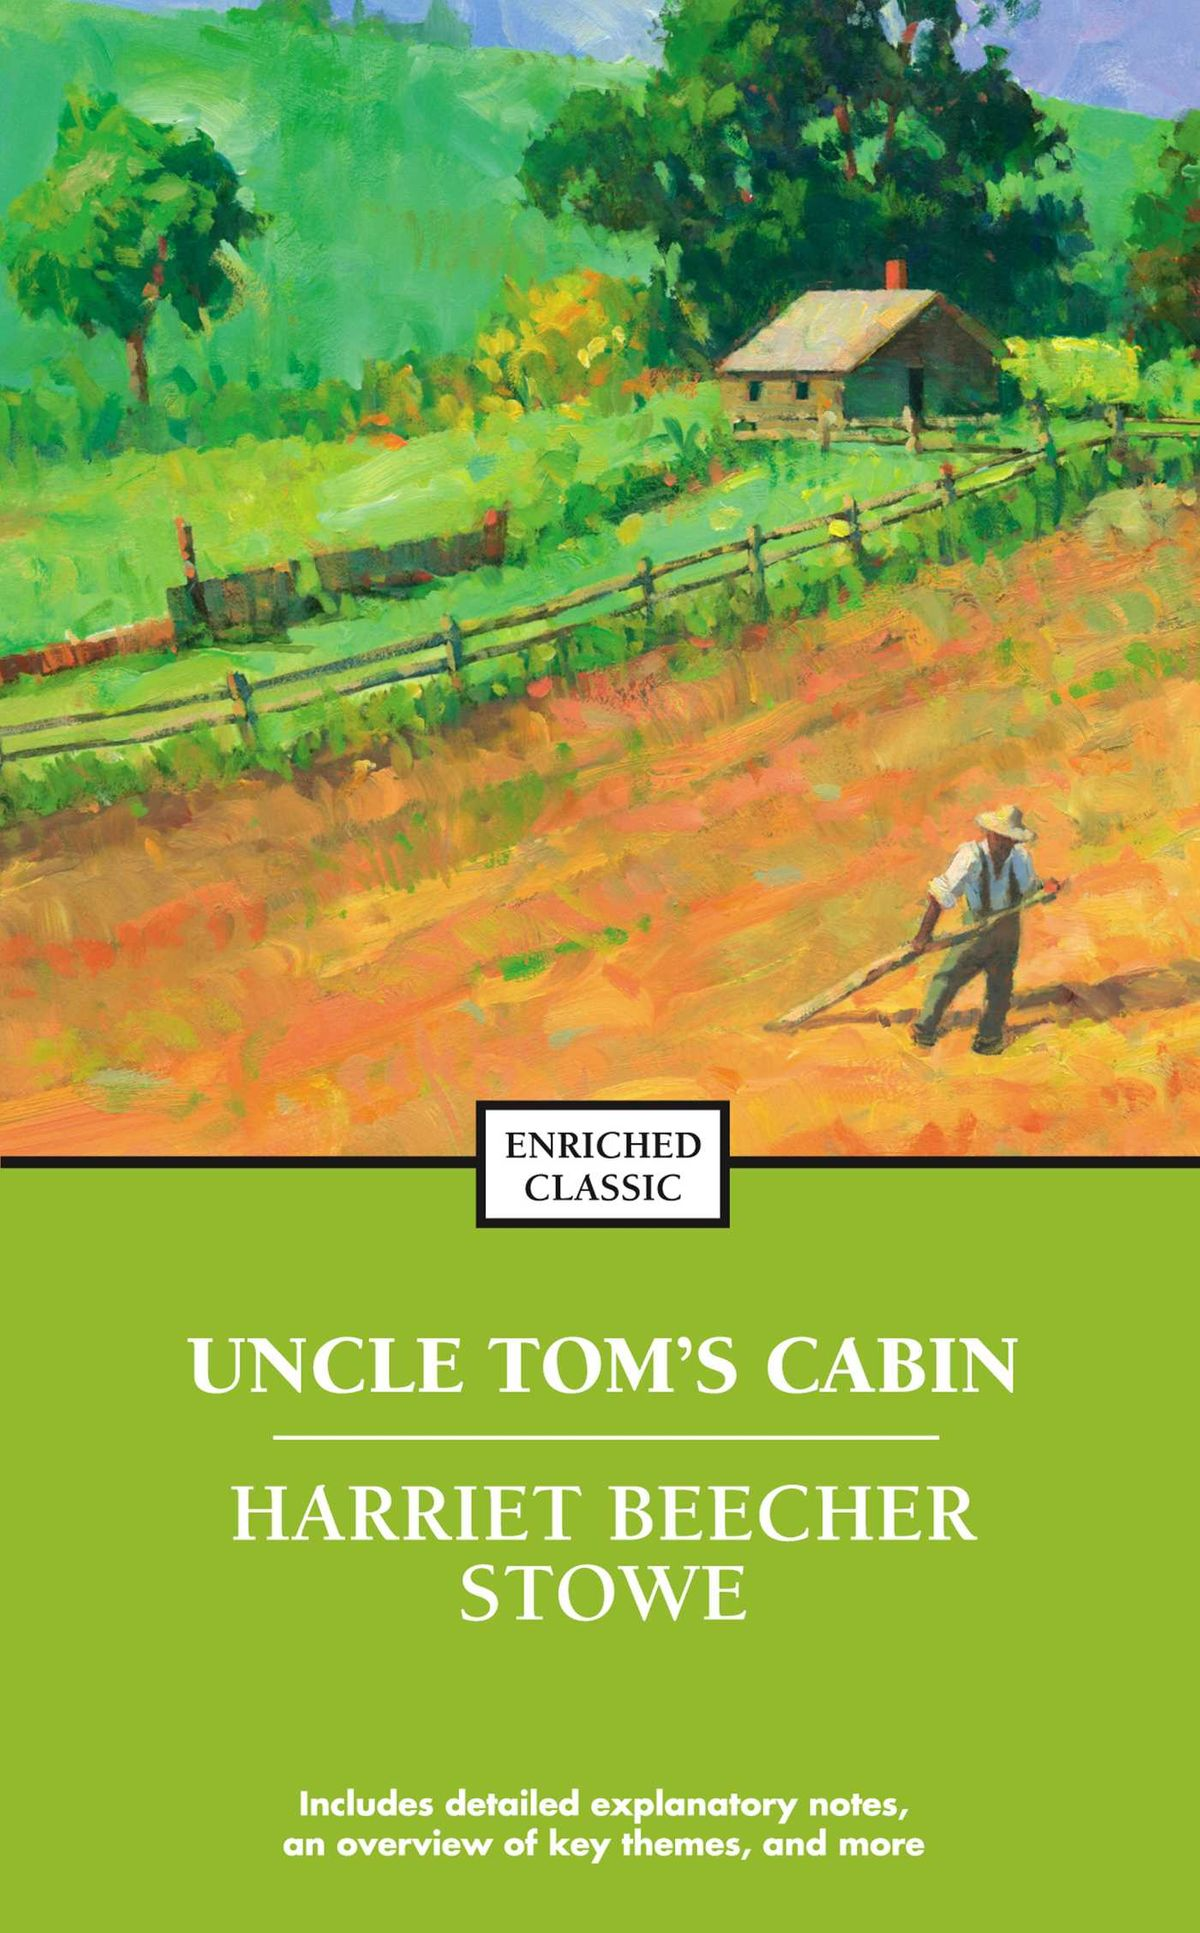 a summary of arriet stowes novel uncle toms cabin Uncle toms cabin young folks edition by harriet beecher stowe circa 1910 see more like this uncle tom's cabin by harriet beecher stowe - 1879, illus with bibliography 50 out of 5 stars - uncle tom's cabin by harriet beecher stowe - 1879, illus with bibliography.